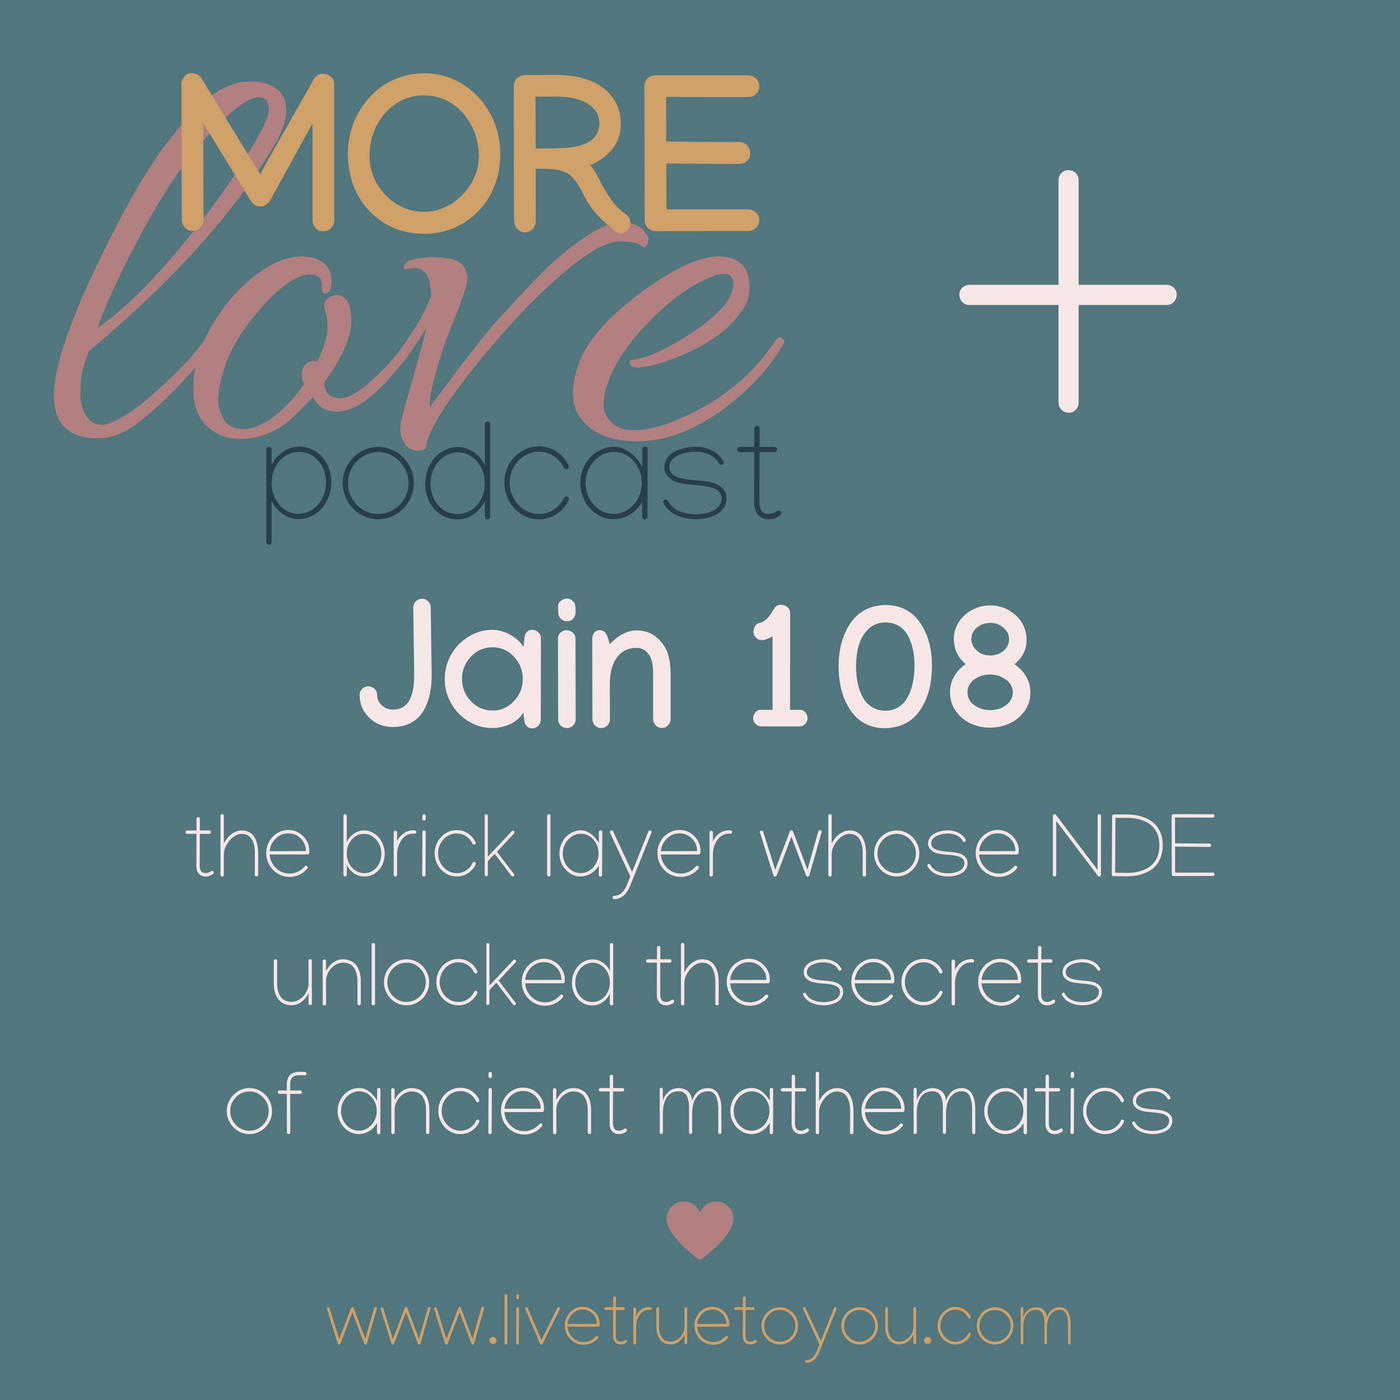 More Love Podcast talks with Jain 108 - the brick layer whose NDE unlocked the secrets of ancient mathematics